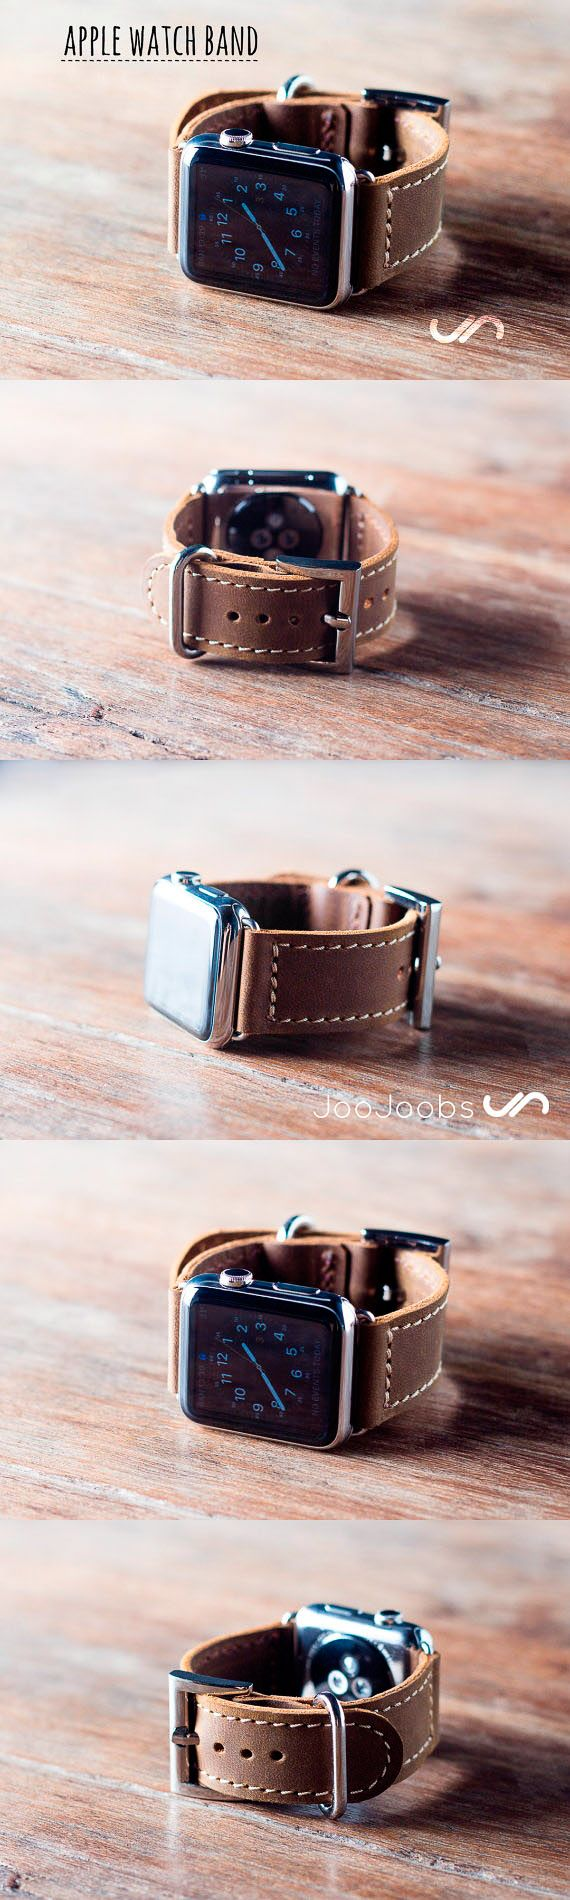 The JooJoobs Apple Watch Strap is handmade from full grain distressed leather. Lets us fulfill your wearable technology needs with style and quality that will last a lifetime.